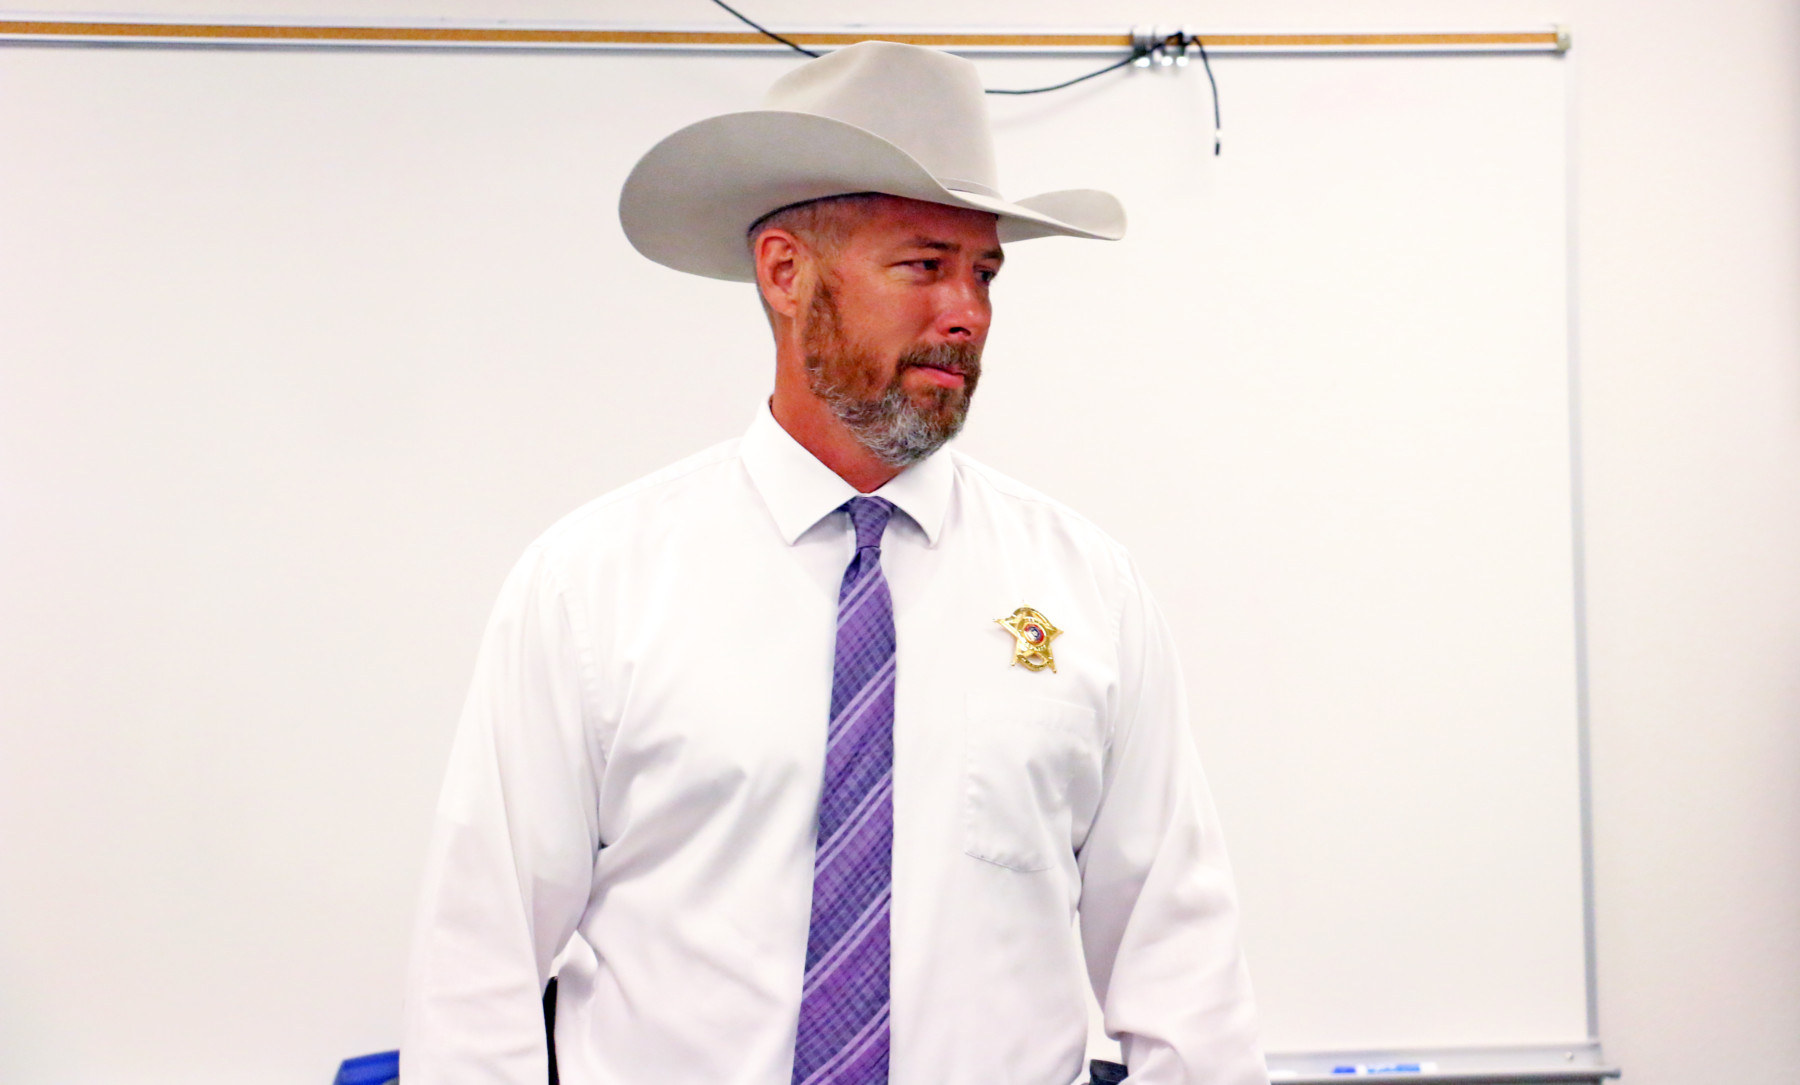 Erath County Sheriff Matt Coates